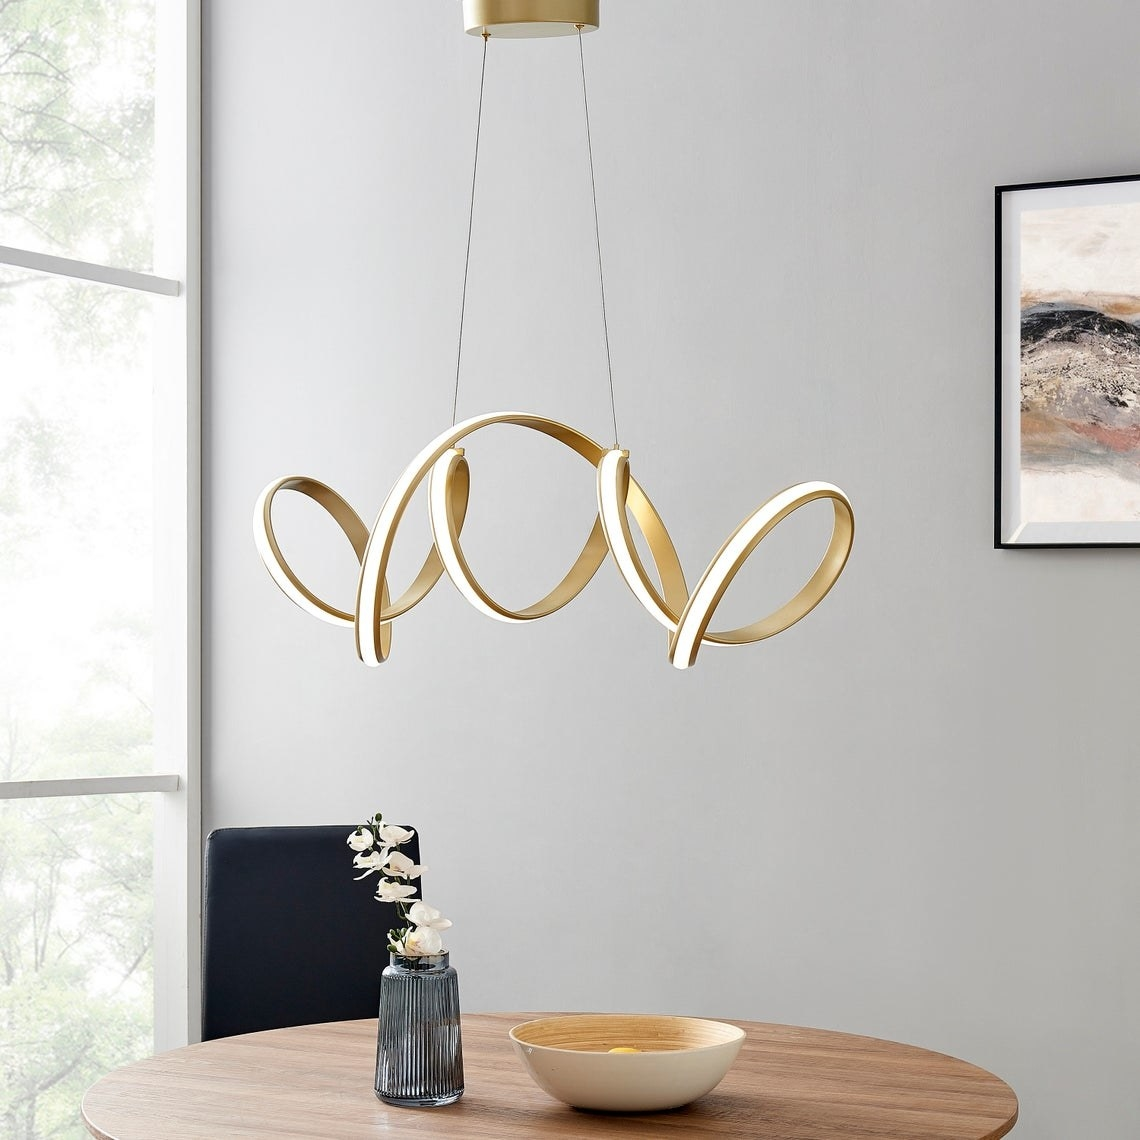 Twisty LED light hanging from ceiling with gold details